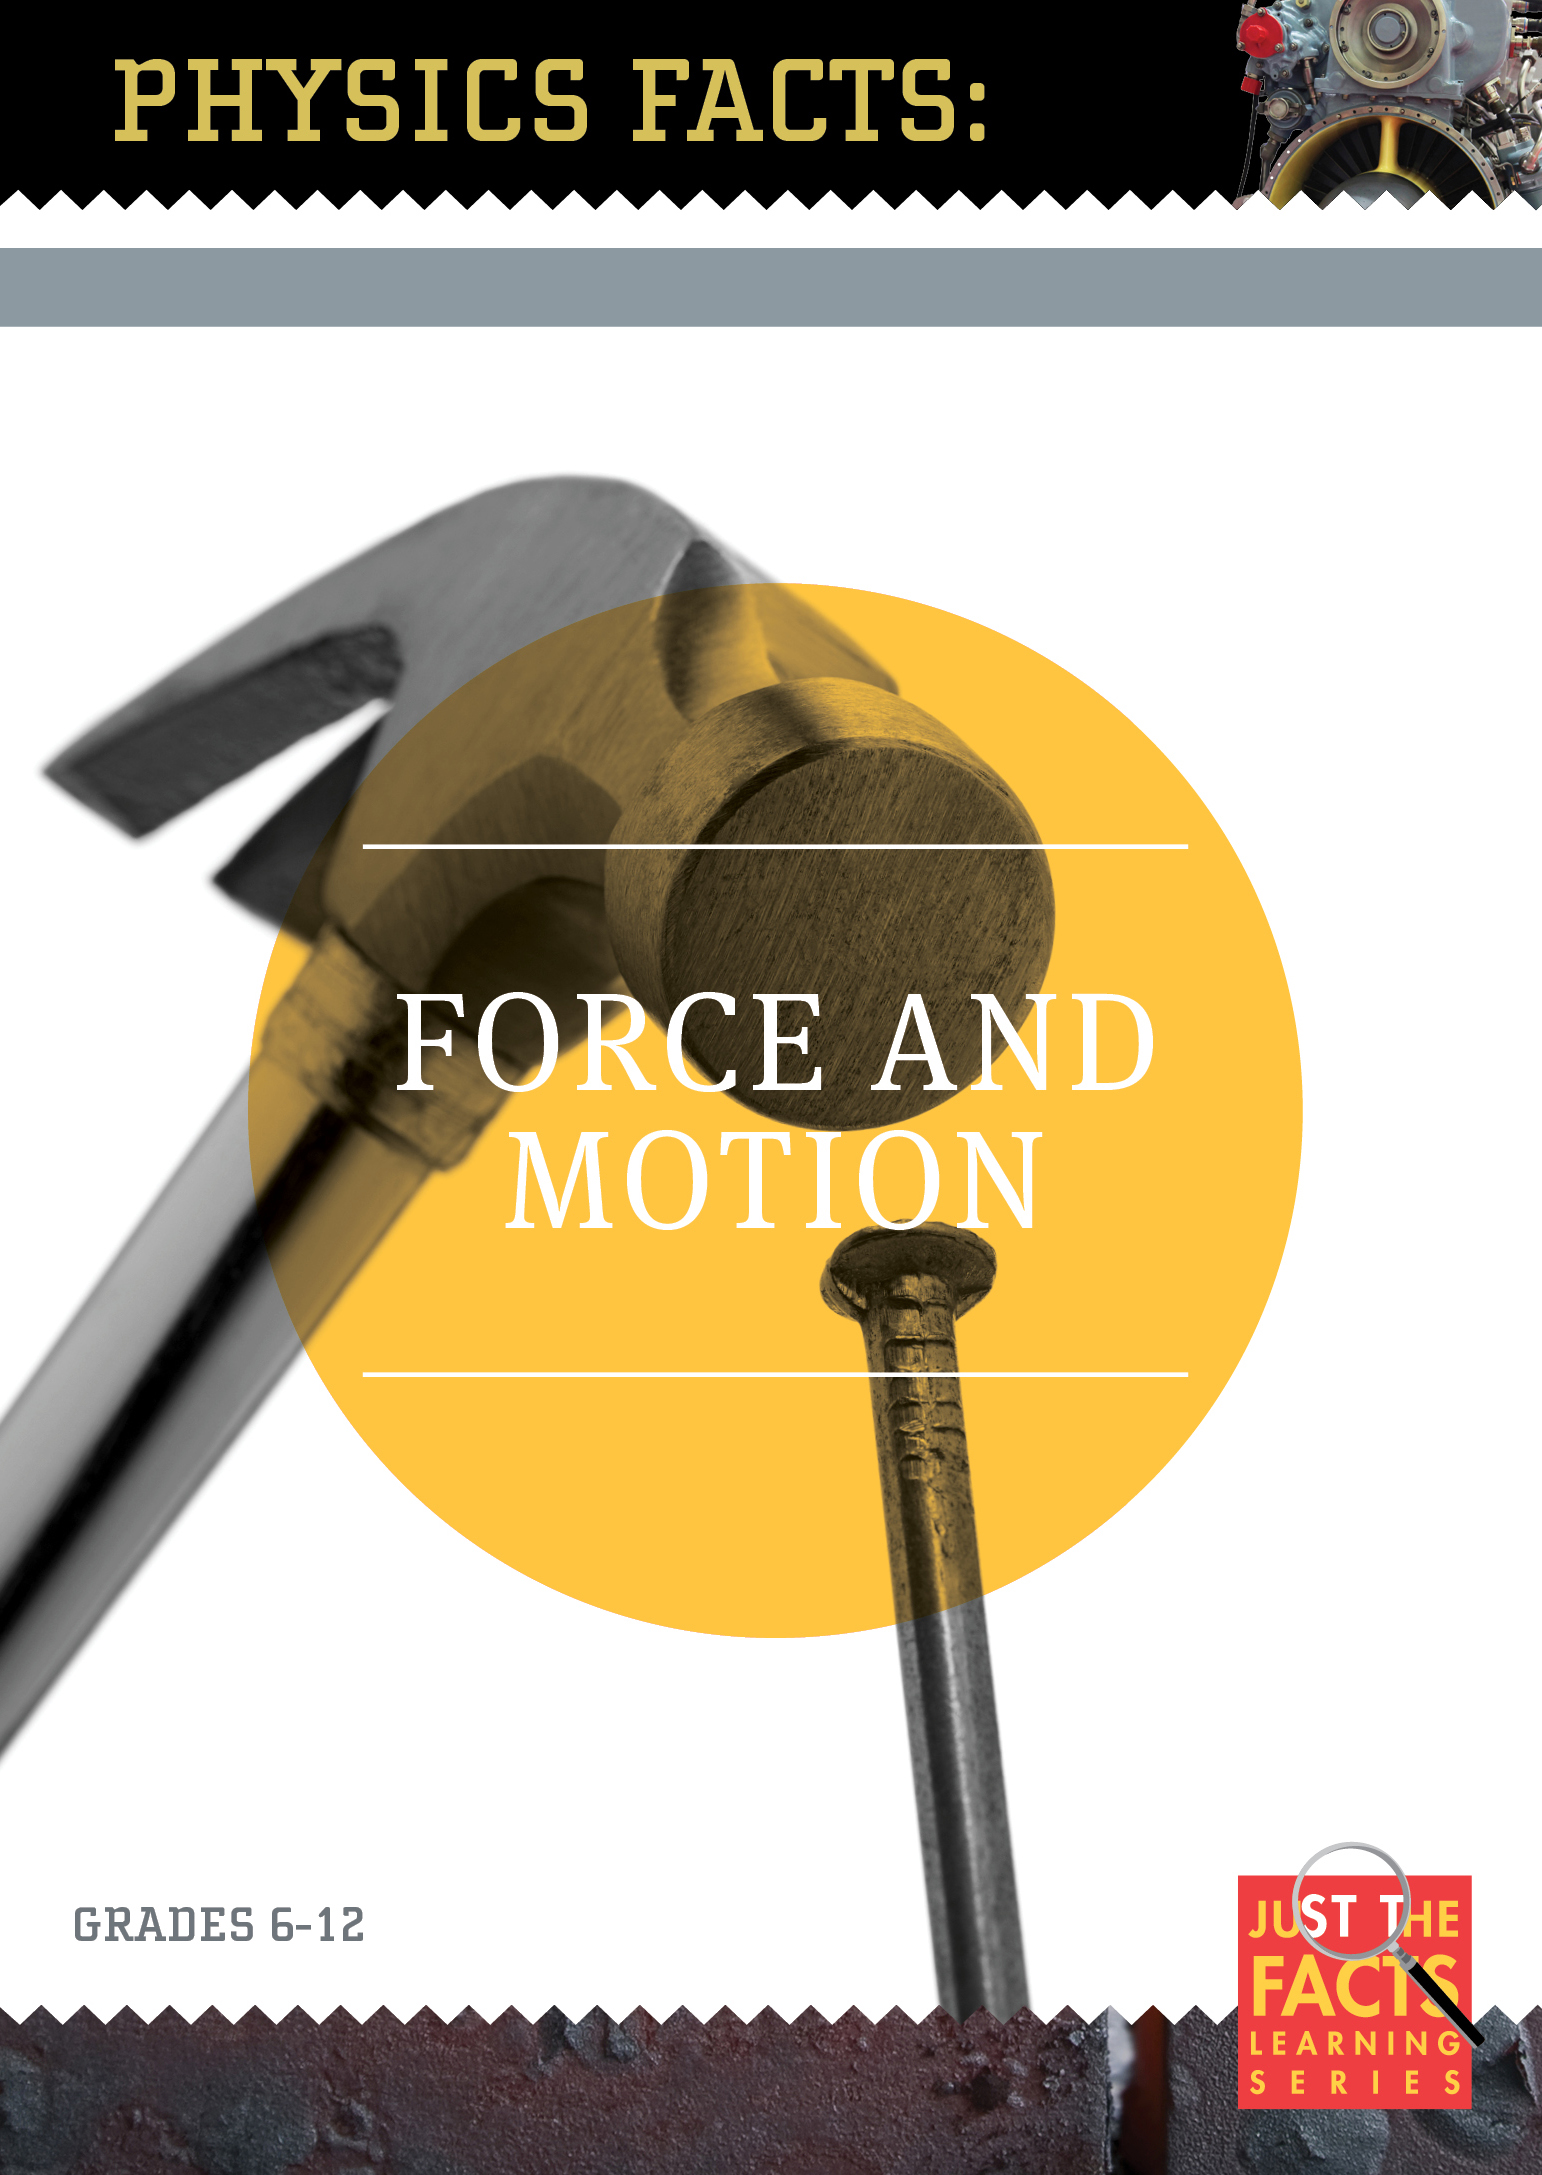 Physics Facts: Force and Motion